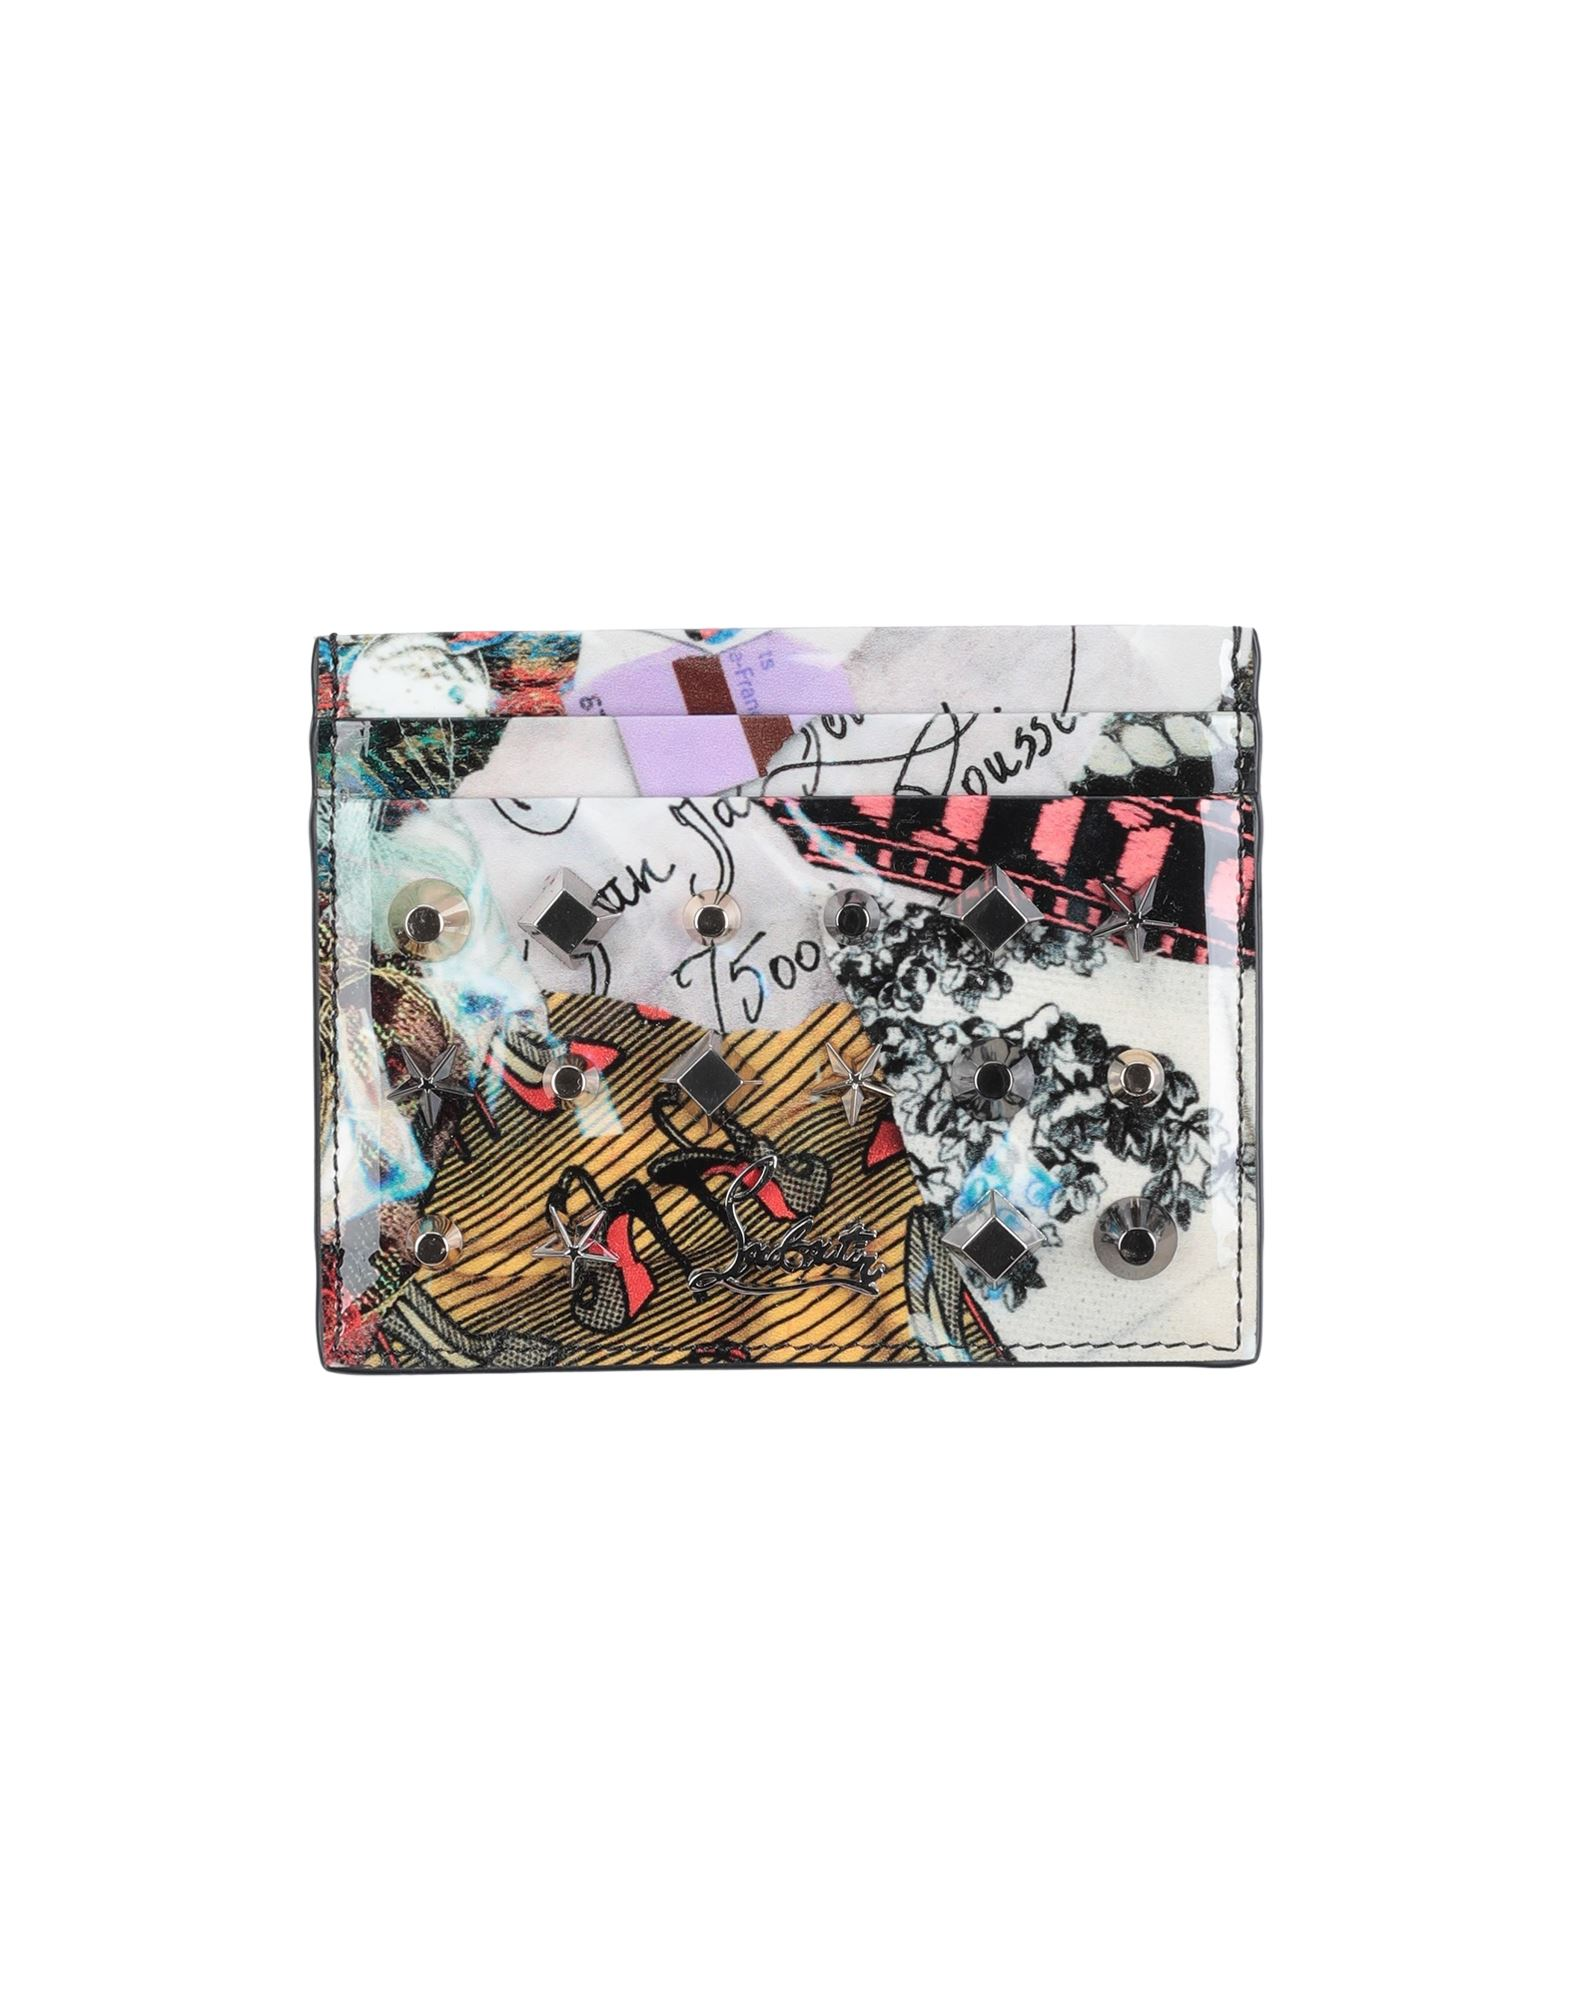 CHRISTIAN LOUBOUTIN Document holders. varnished effect, metal applications, logo, multicolor pattern, fully lined. Soft Leather